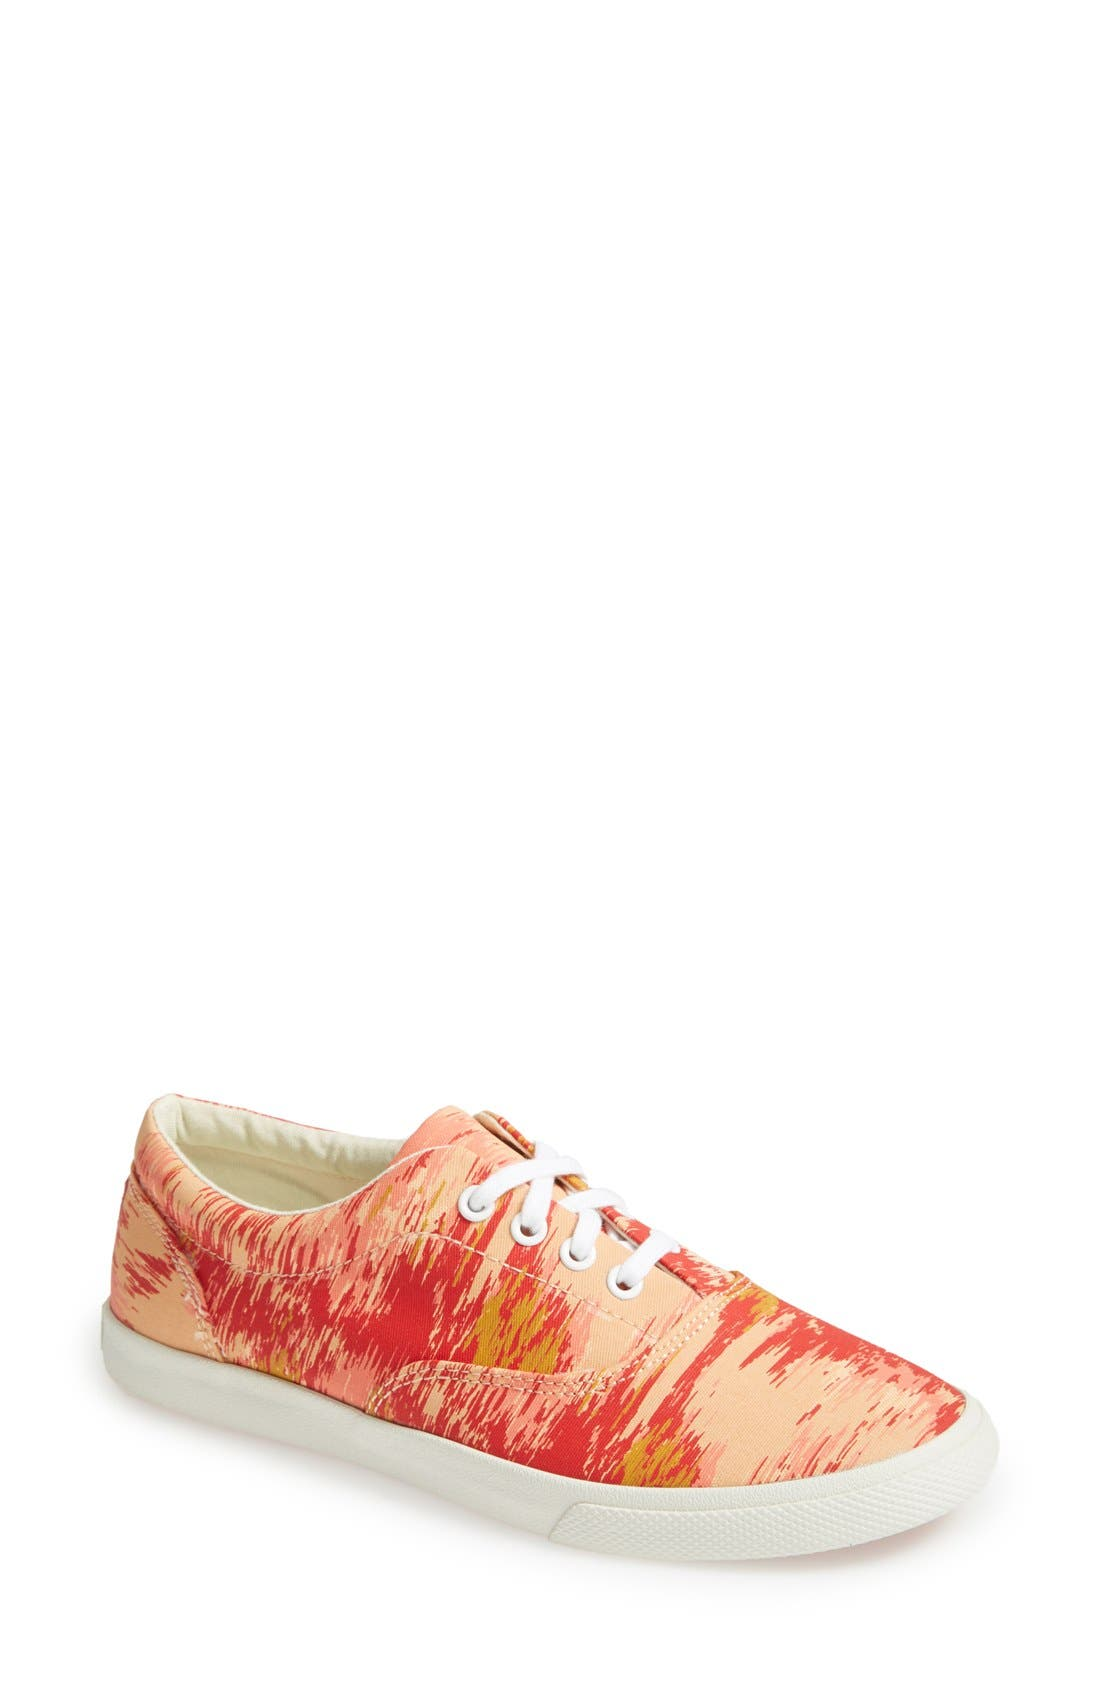 Alternate Image 1 Selected - BucketFeet 'Dazed Flowers' Sneaker (Women)